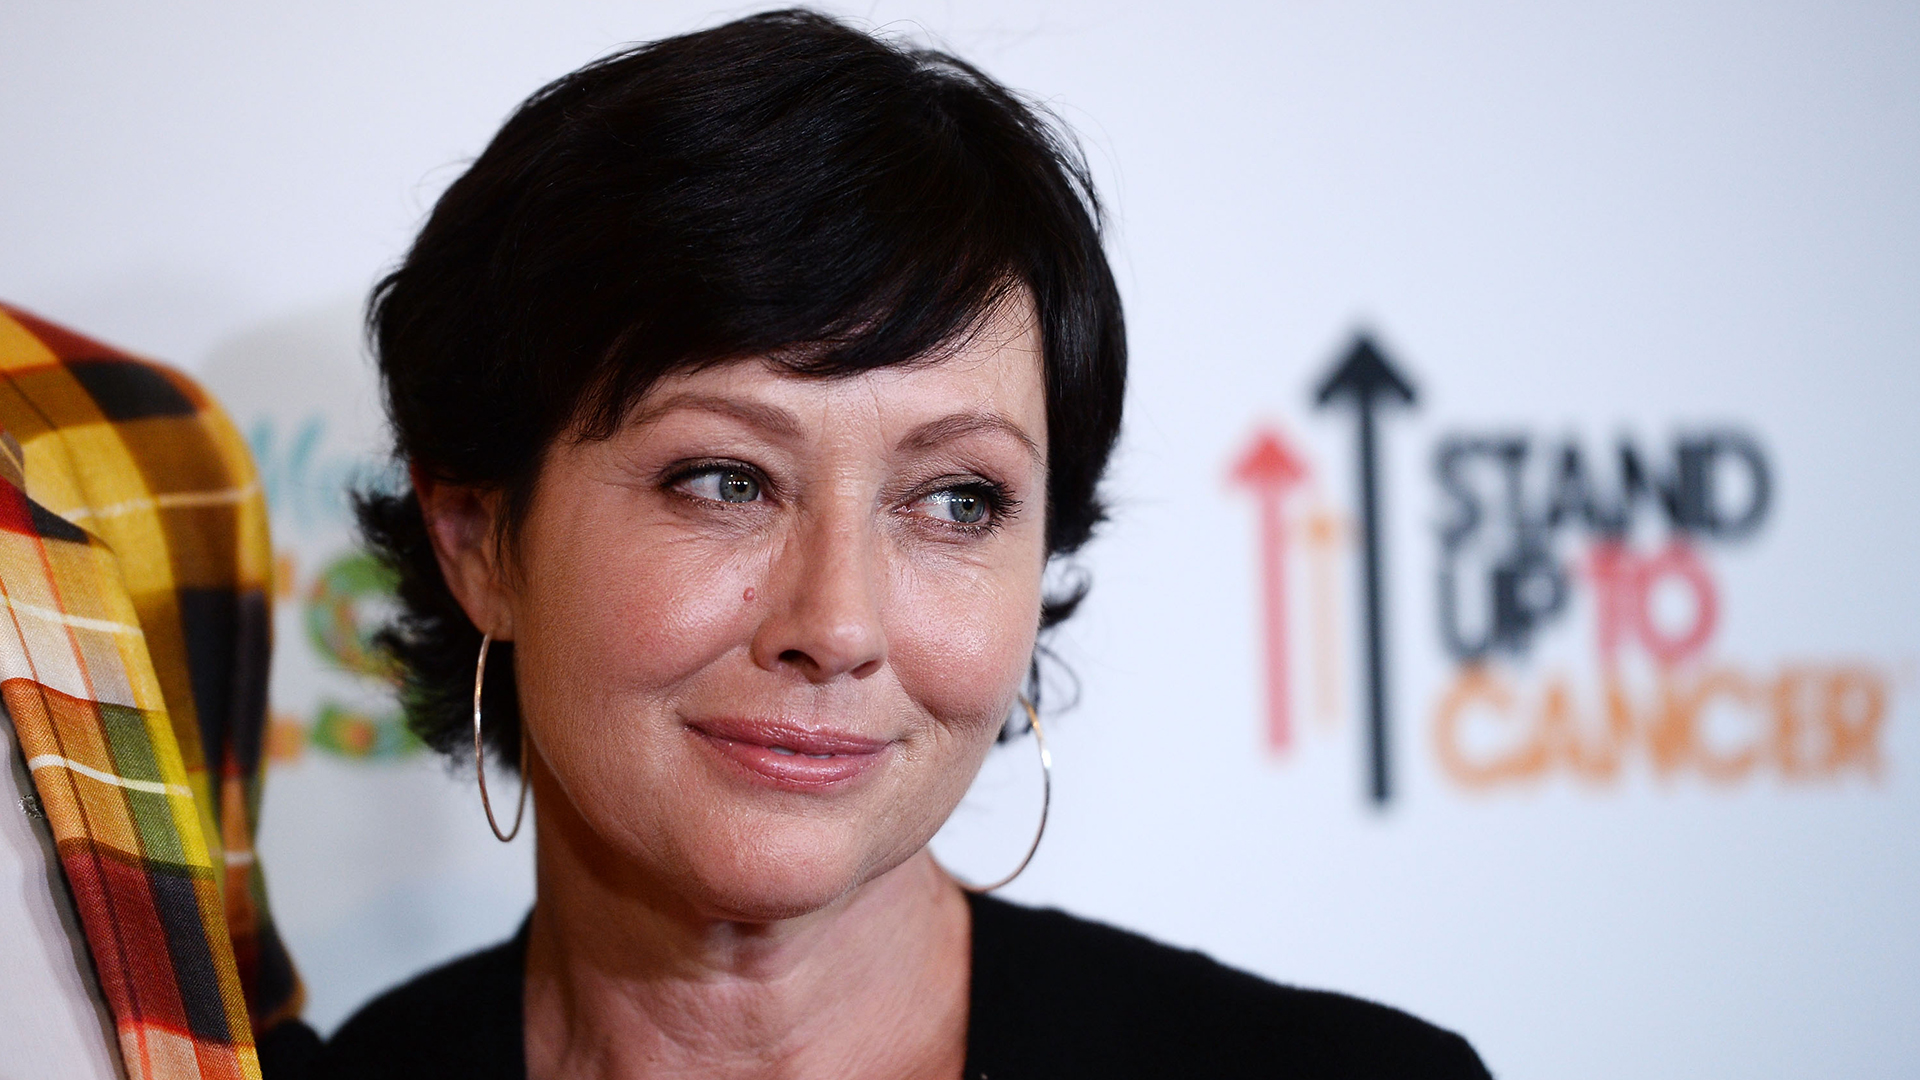 Shannen Doherty dances for the sake of his father 09.03.2010 88